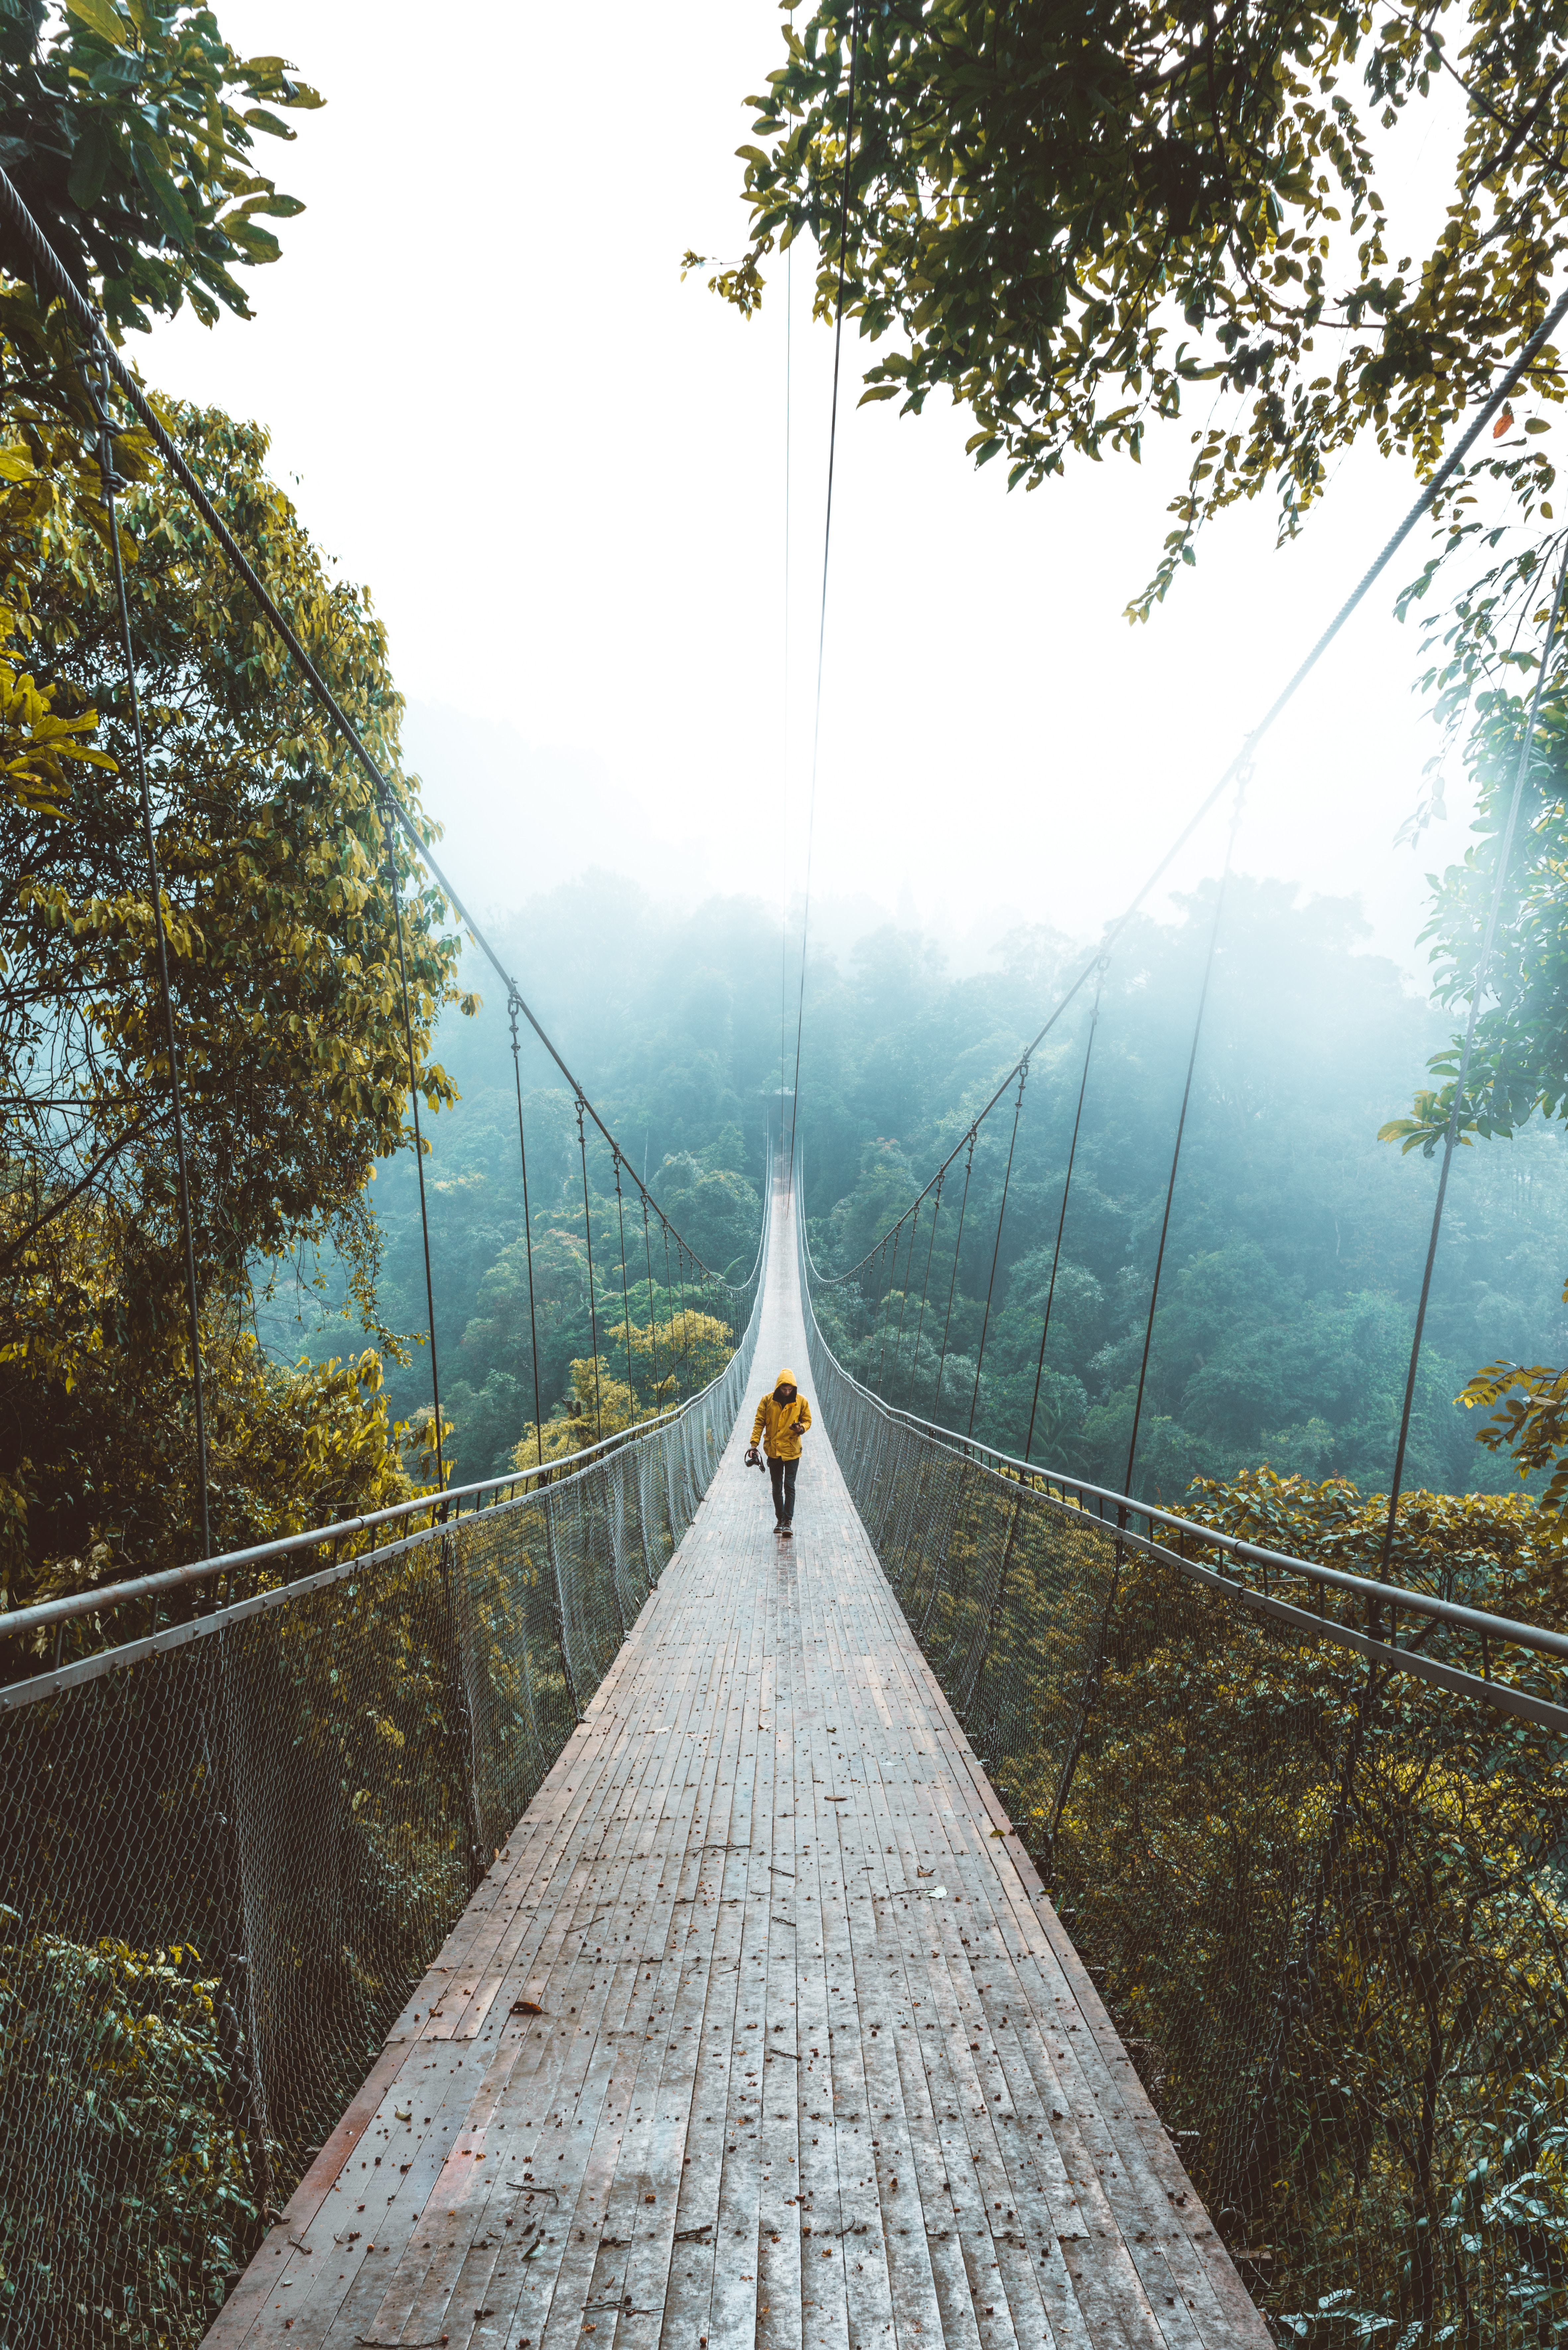 86529 download wallpaper Nature, Bridge, Suspension Bridge, Loneliness, Stroll, Forest screensavers and pictures for free